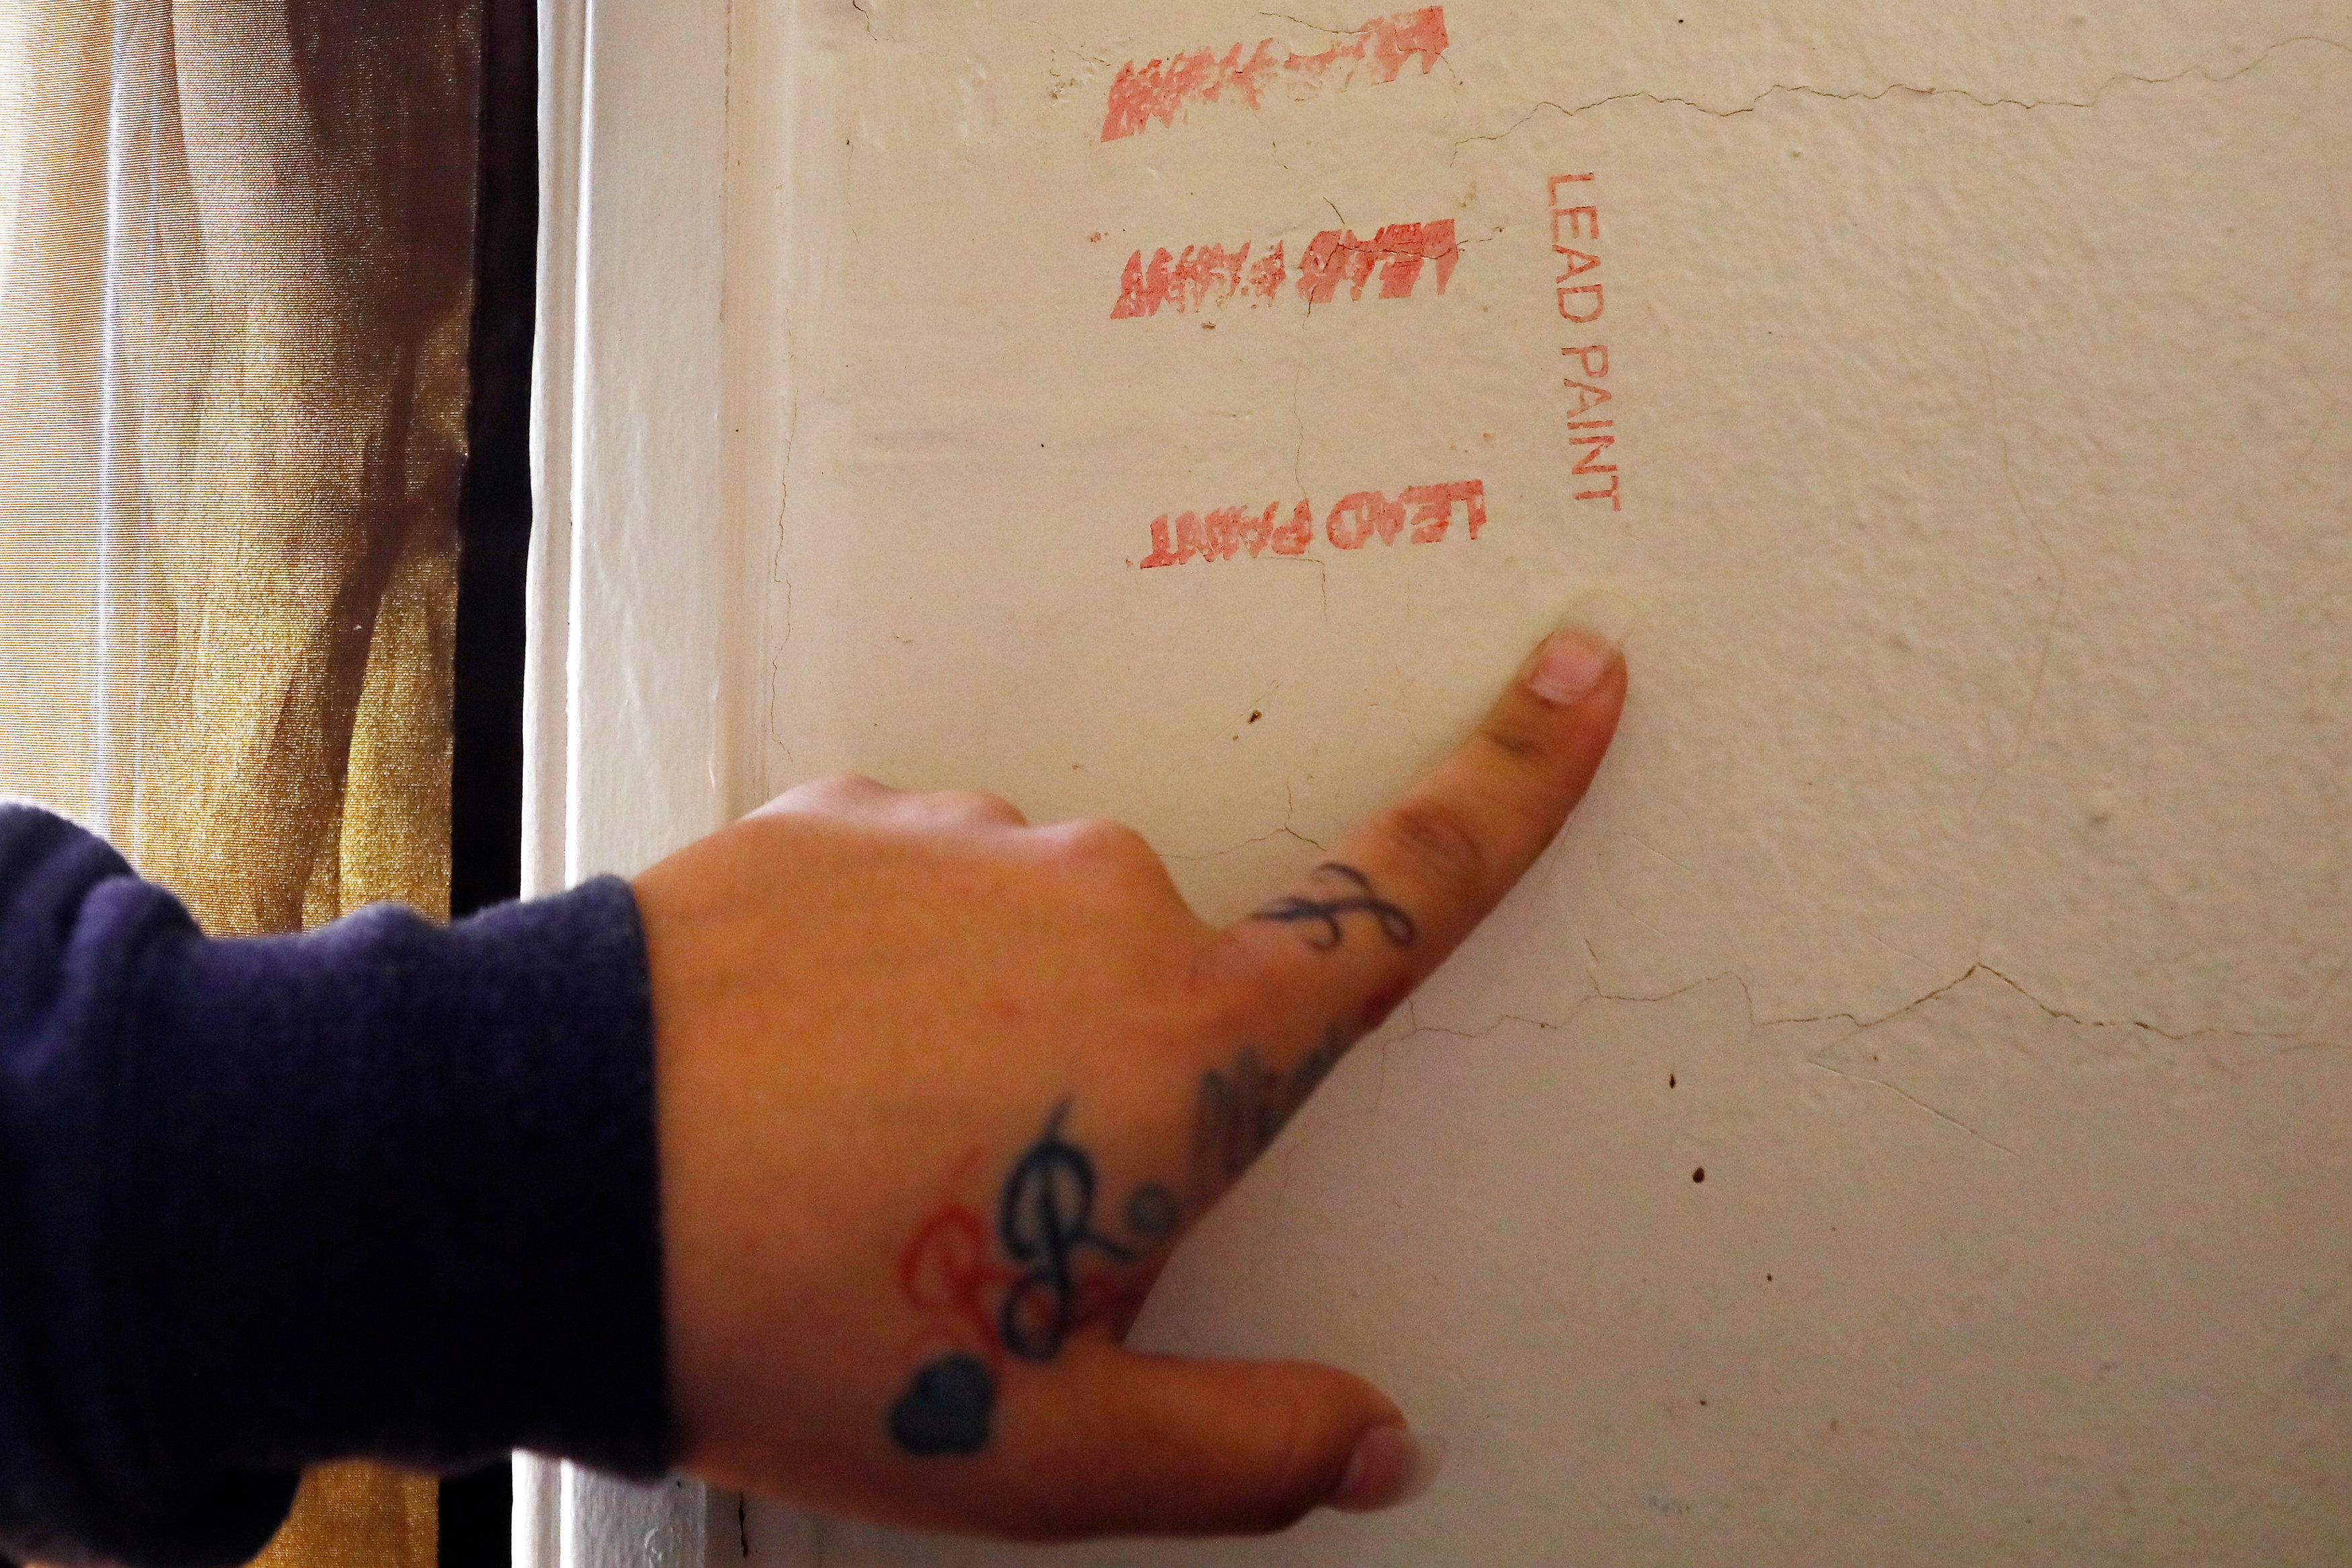 Special Report: Lead poisoning lurks in scores of New York areas